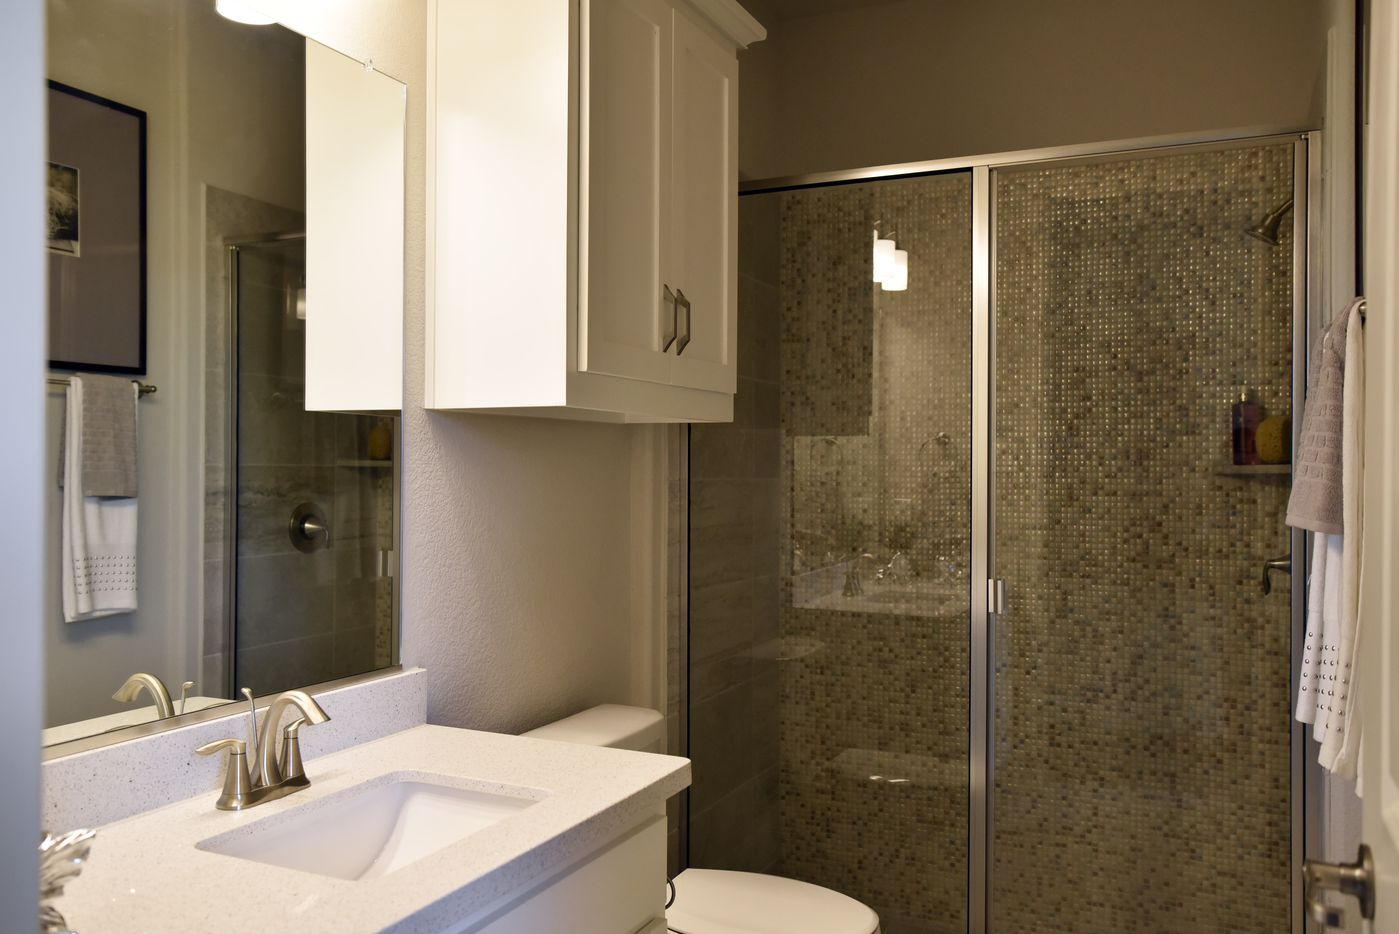 The accessible bathroom inside the extra suite in Lennar's NextGen home.